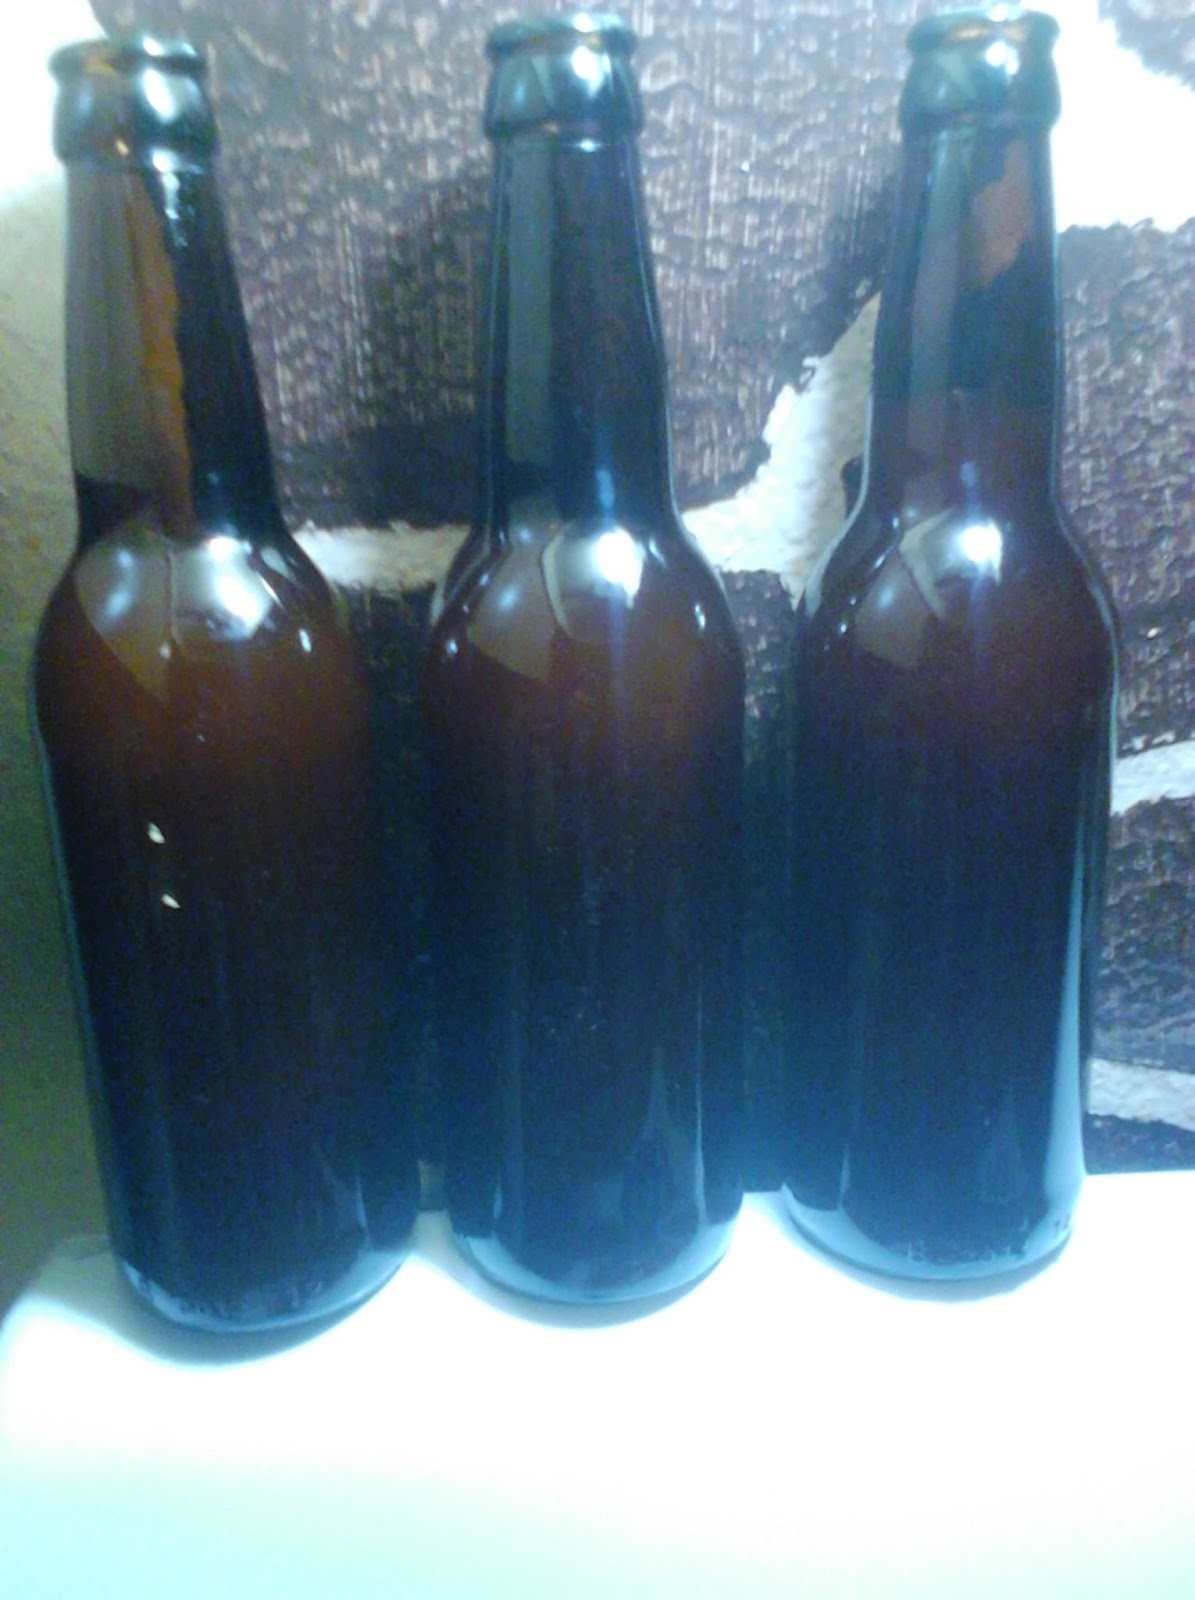 My beer in bottles pre-cap image